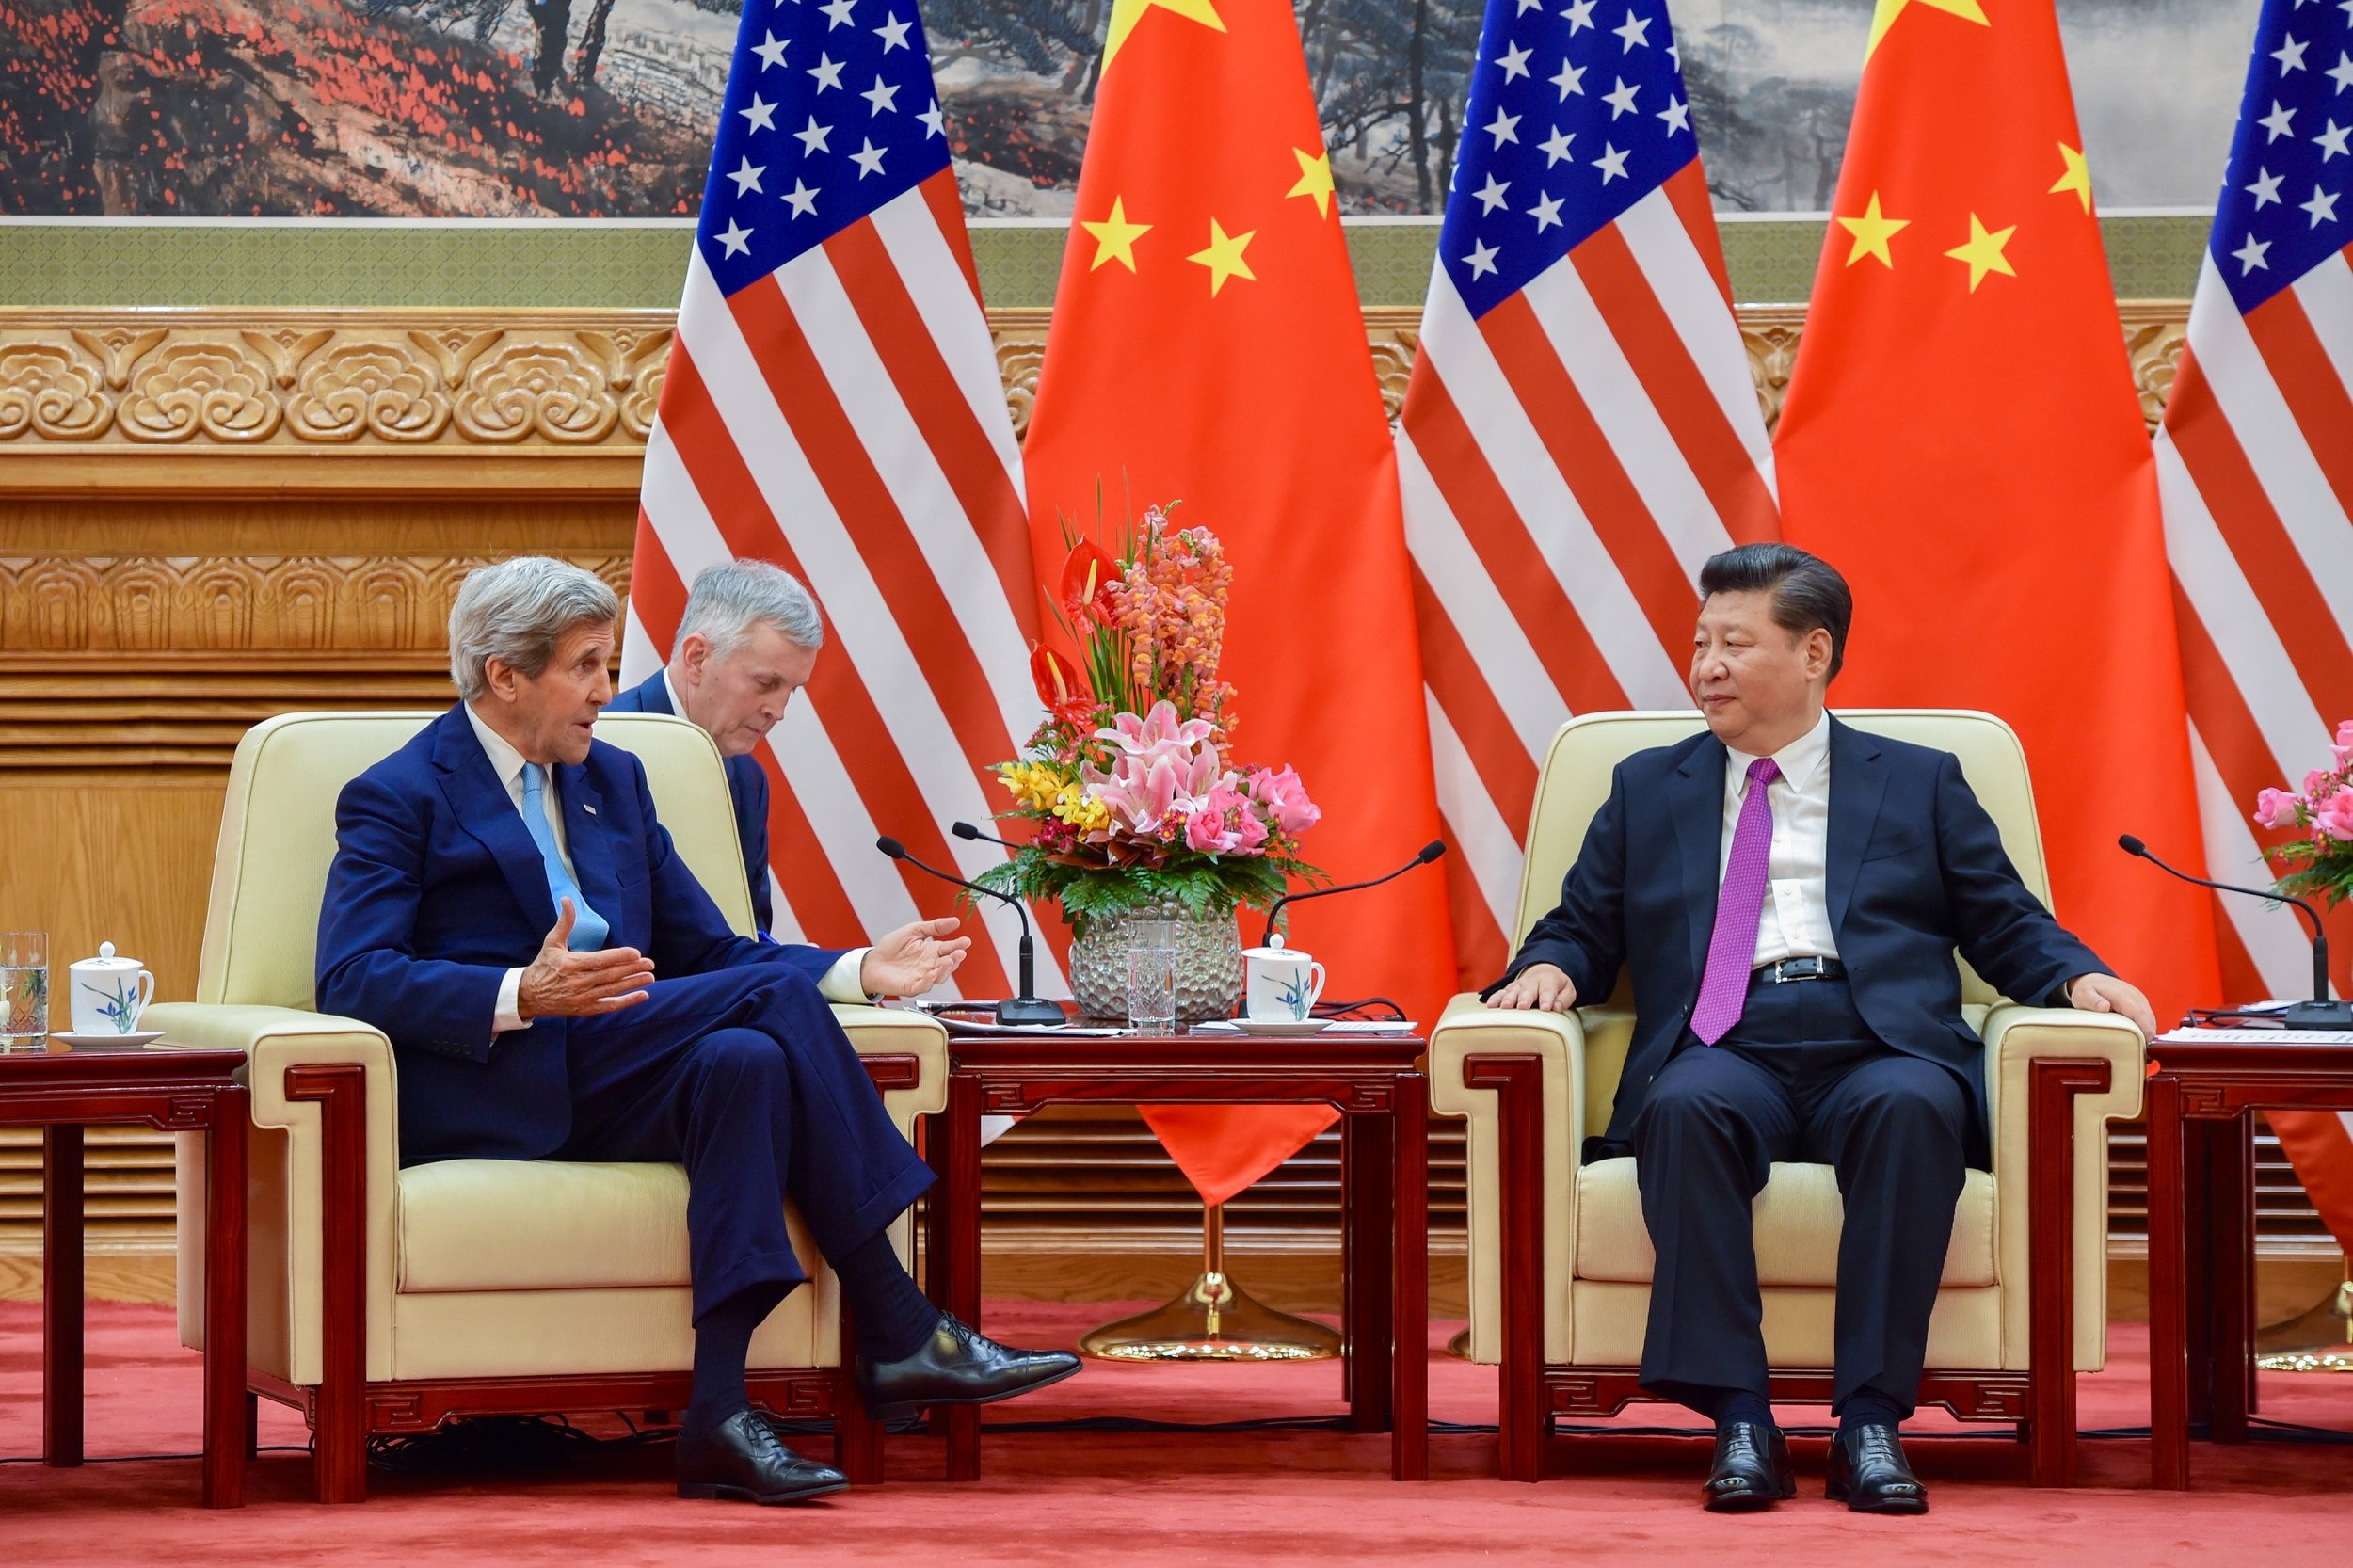 Secretary Kerry speaks with President Xi in a meeting room at the Great Hall of the People.